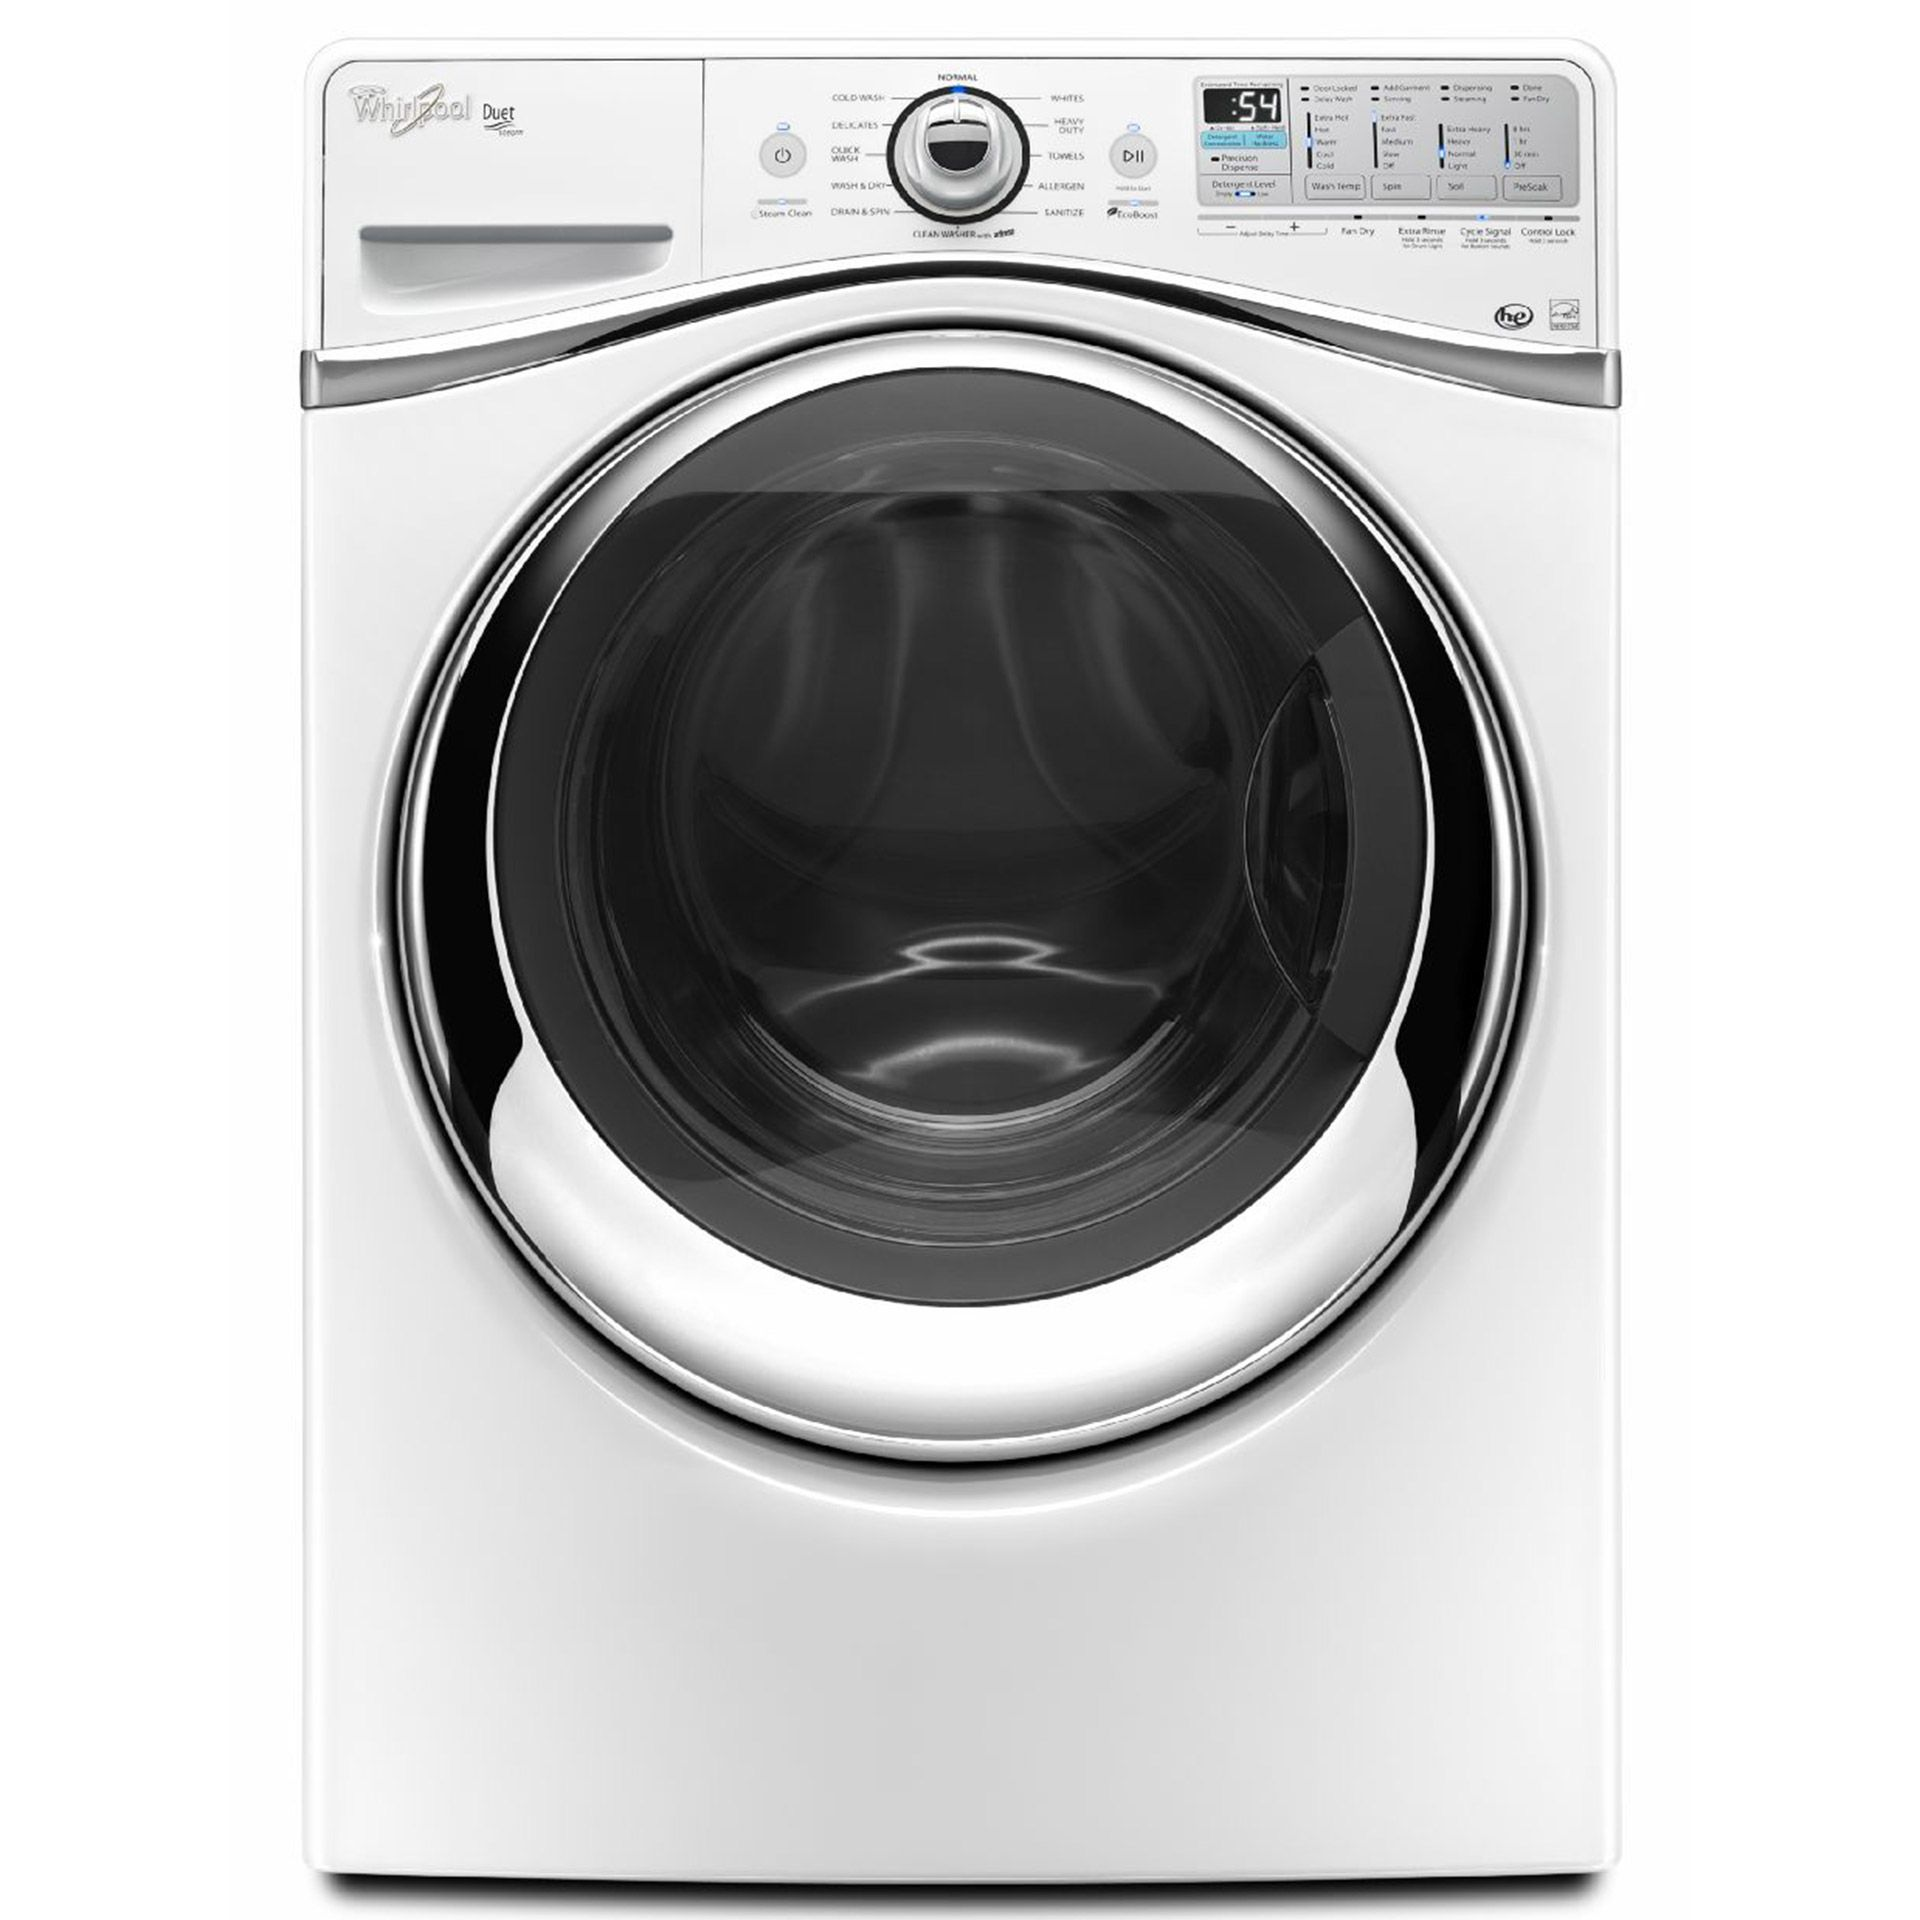 Whirlpool 4.3 cu. ft. Duet Steam Front Load Washer with Precision ...